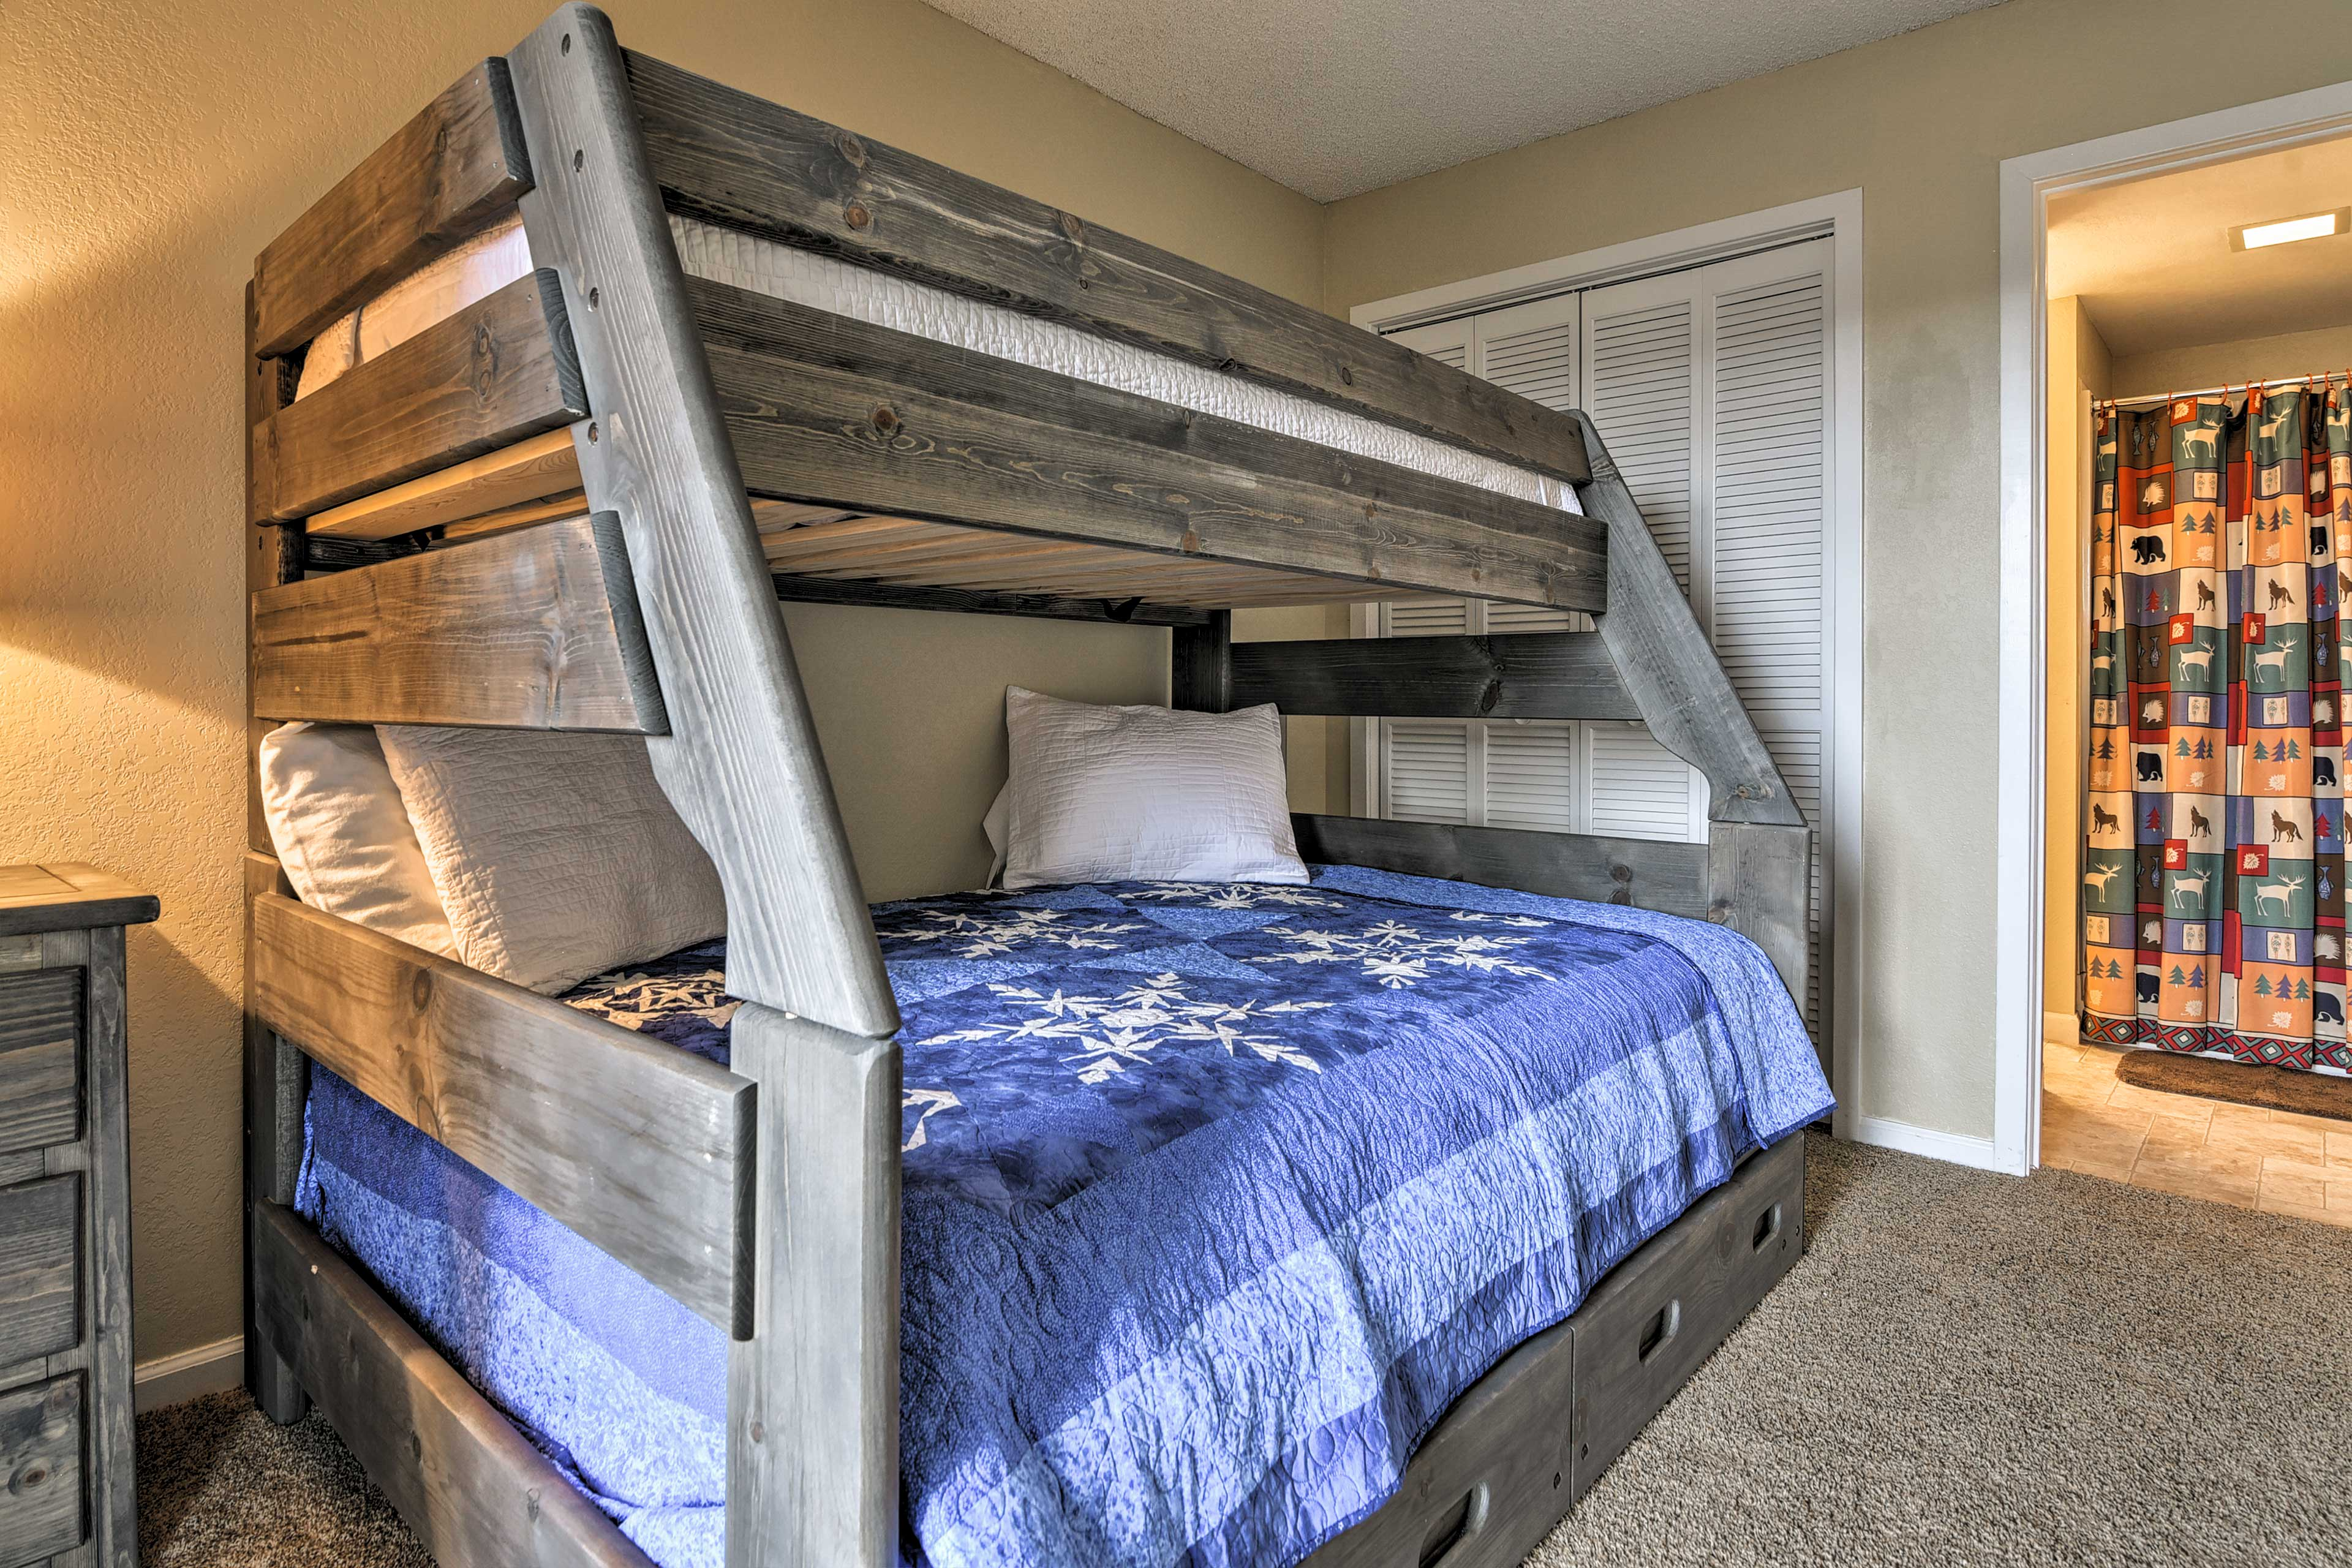 There's a twin trundle bed available for additional sleeping space.